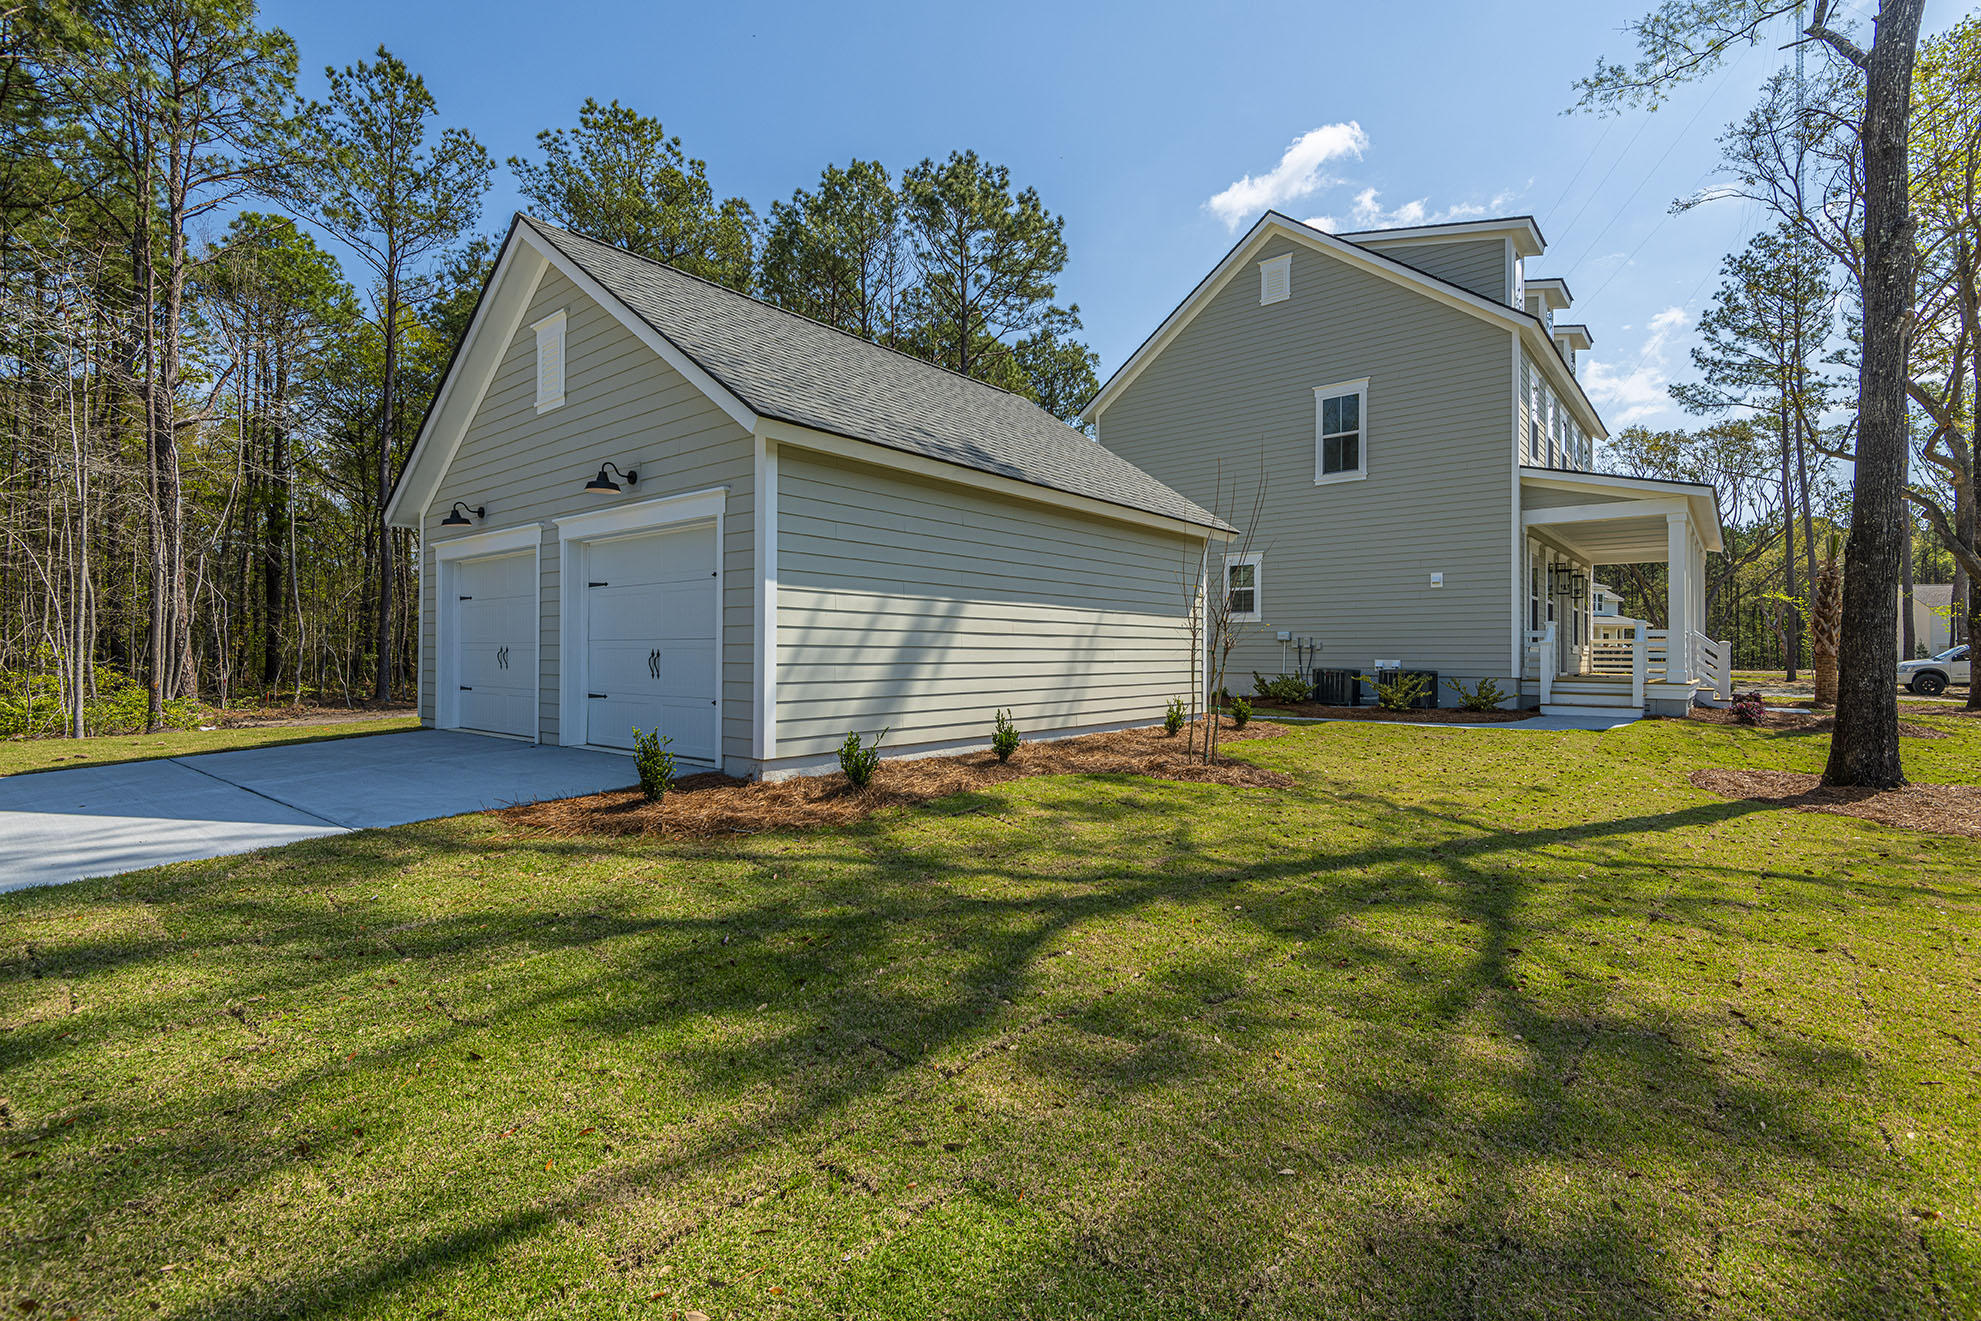 Awendaw Village Homes For Sale - 1072 Reserve, Awendaw, SC - 19